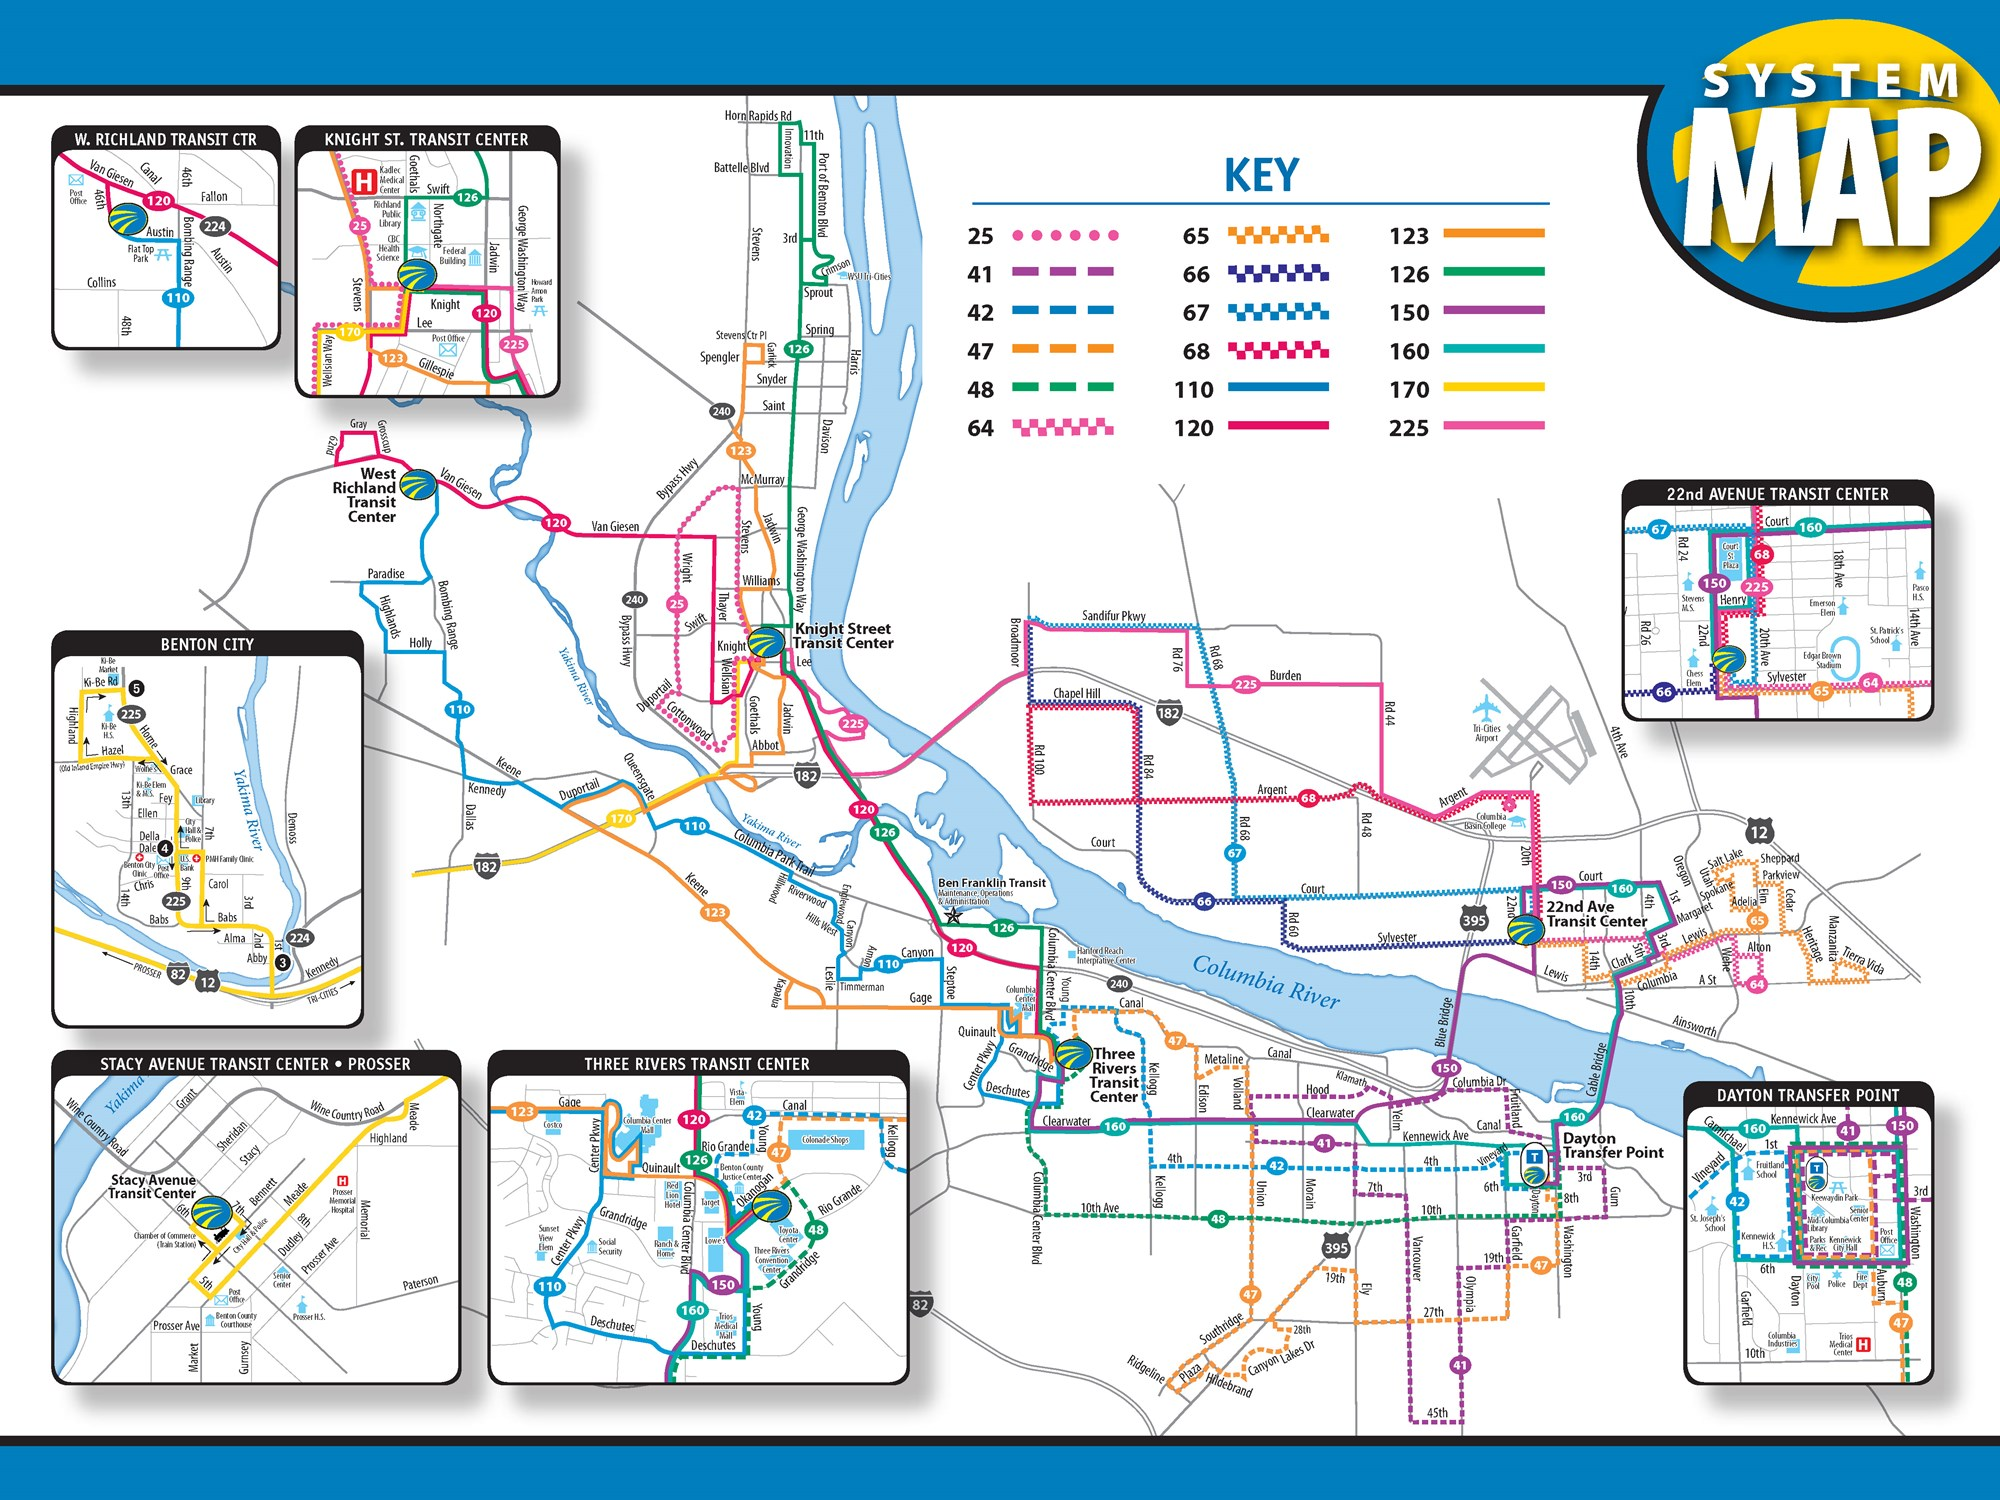 System Map & Routes - Bus Service | Ben Franklin Transit on seattle ferry parking map, seattle i 5 map, seattle seatac airport terminal map, seattle king county map, seattle monorail route map, seattle streetcar route map, seattle population density map, seattle rail map, houston metro lines map, seattle metro city map, seattle subway system map, king metro bus map, seattle transit map, seattle eastside map bellevue, seattle washington map, seattle metro route 75, houston metro bus map, seattle underground bus tunnel, alaskan way seattle map,